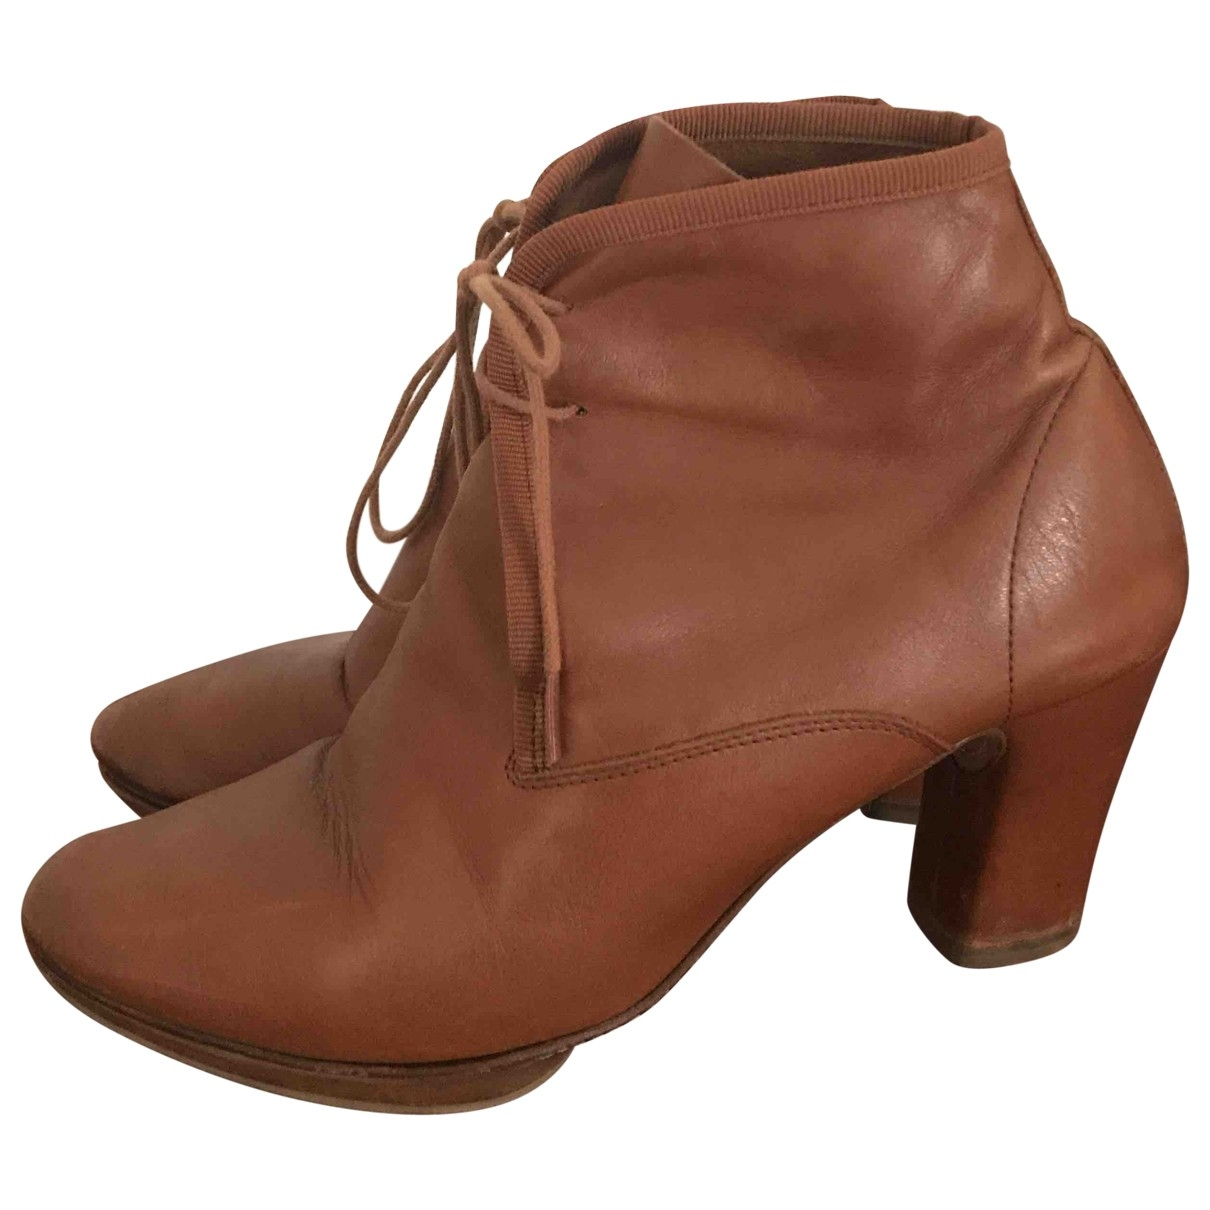 Repetto \N Camel Leather Ankle boots for Women 37 EU